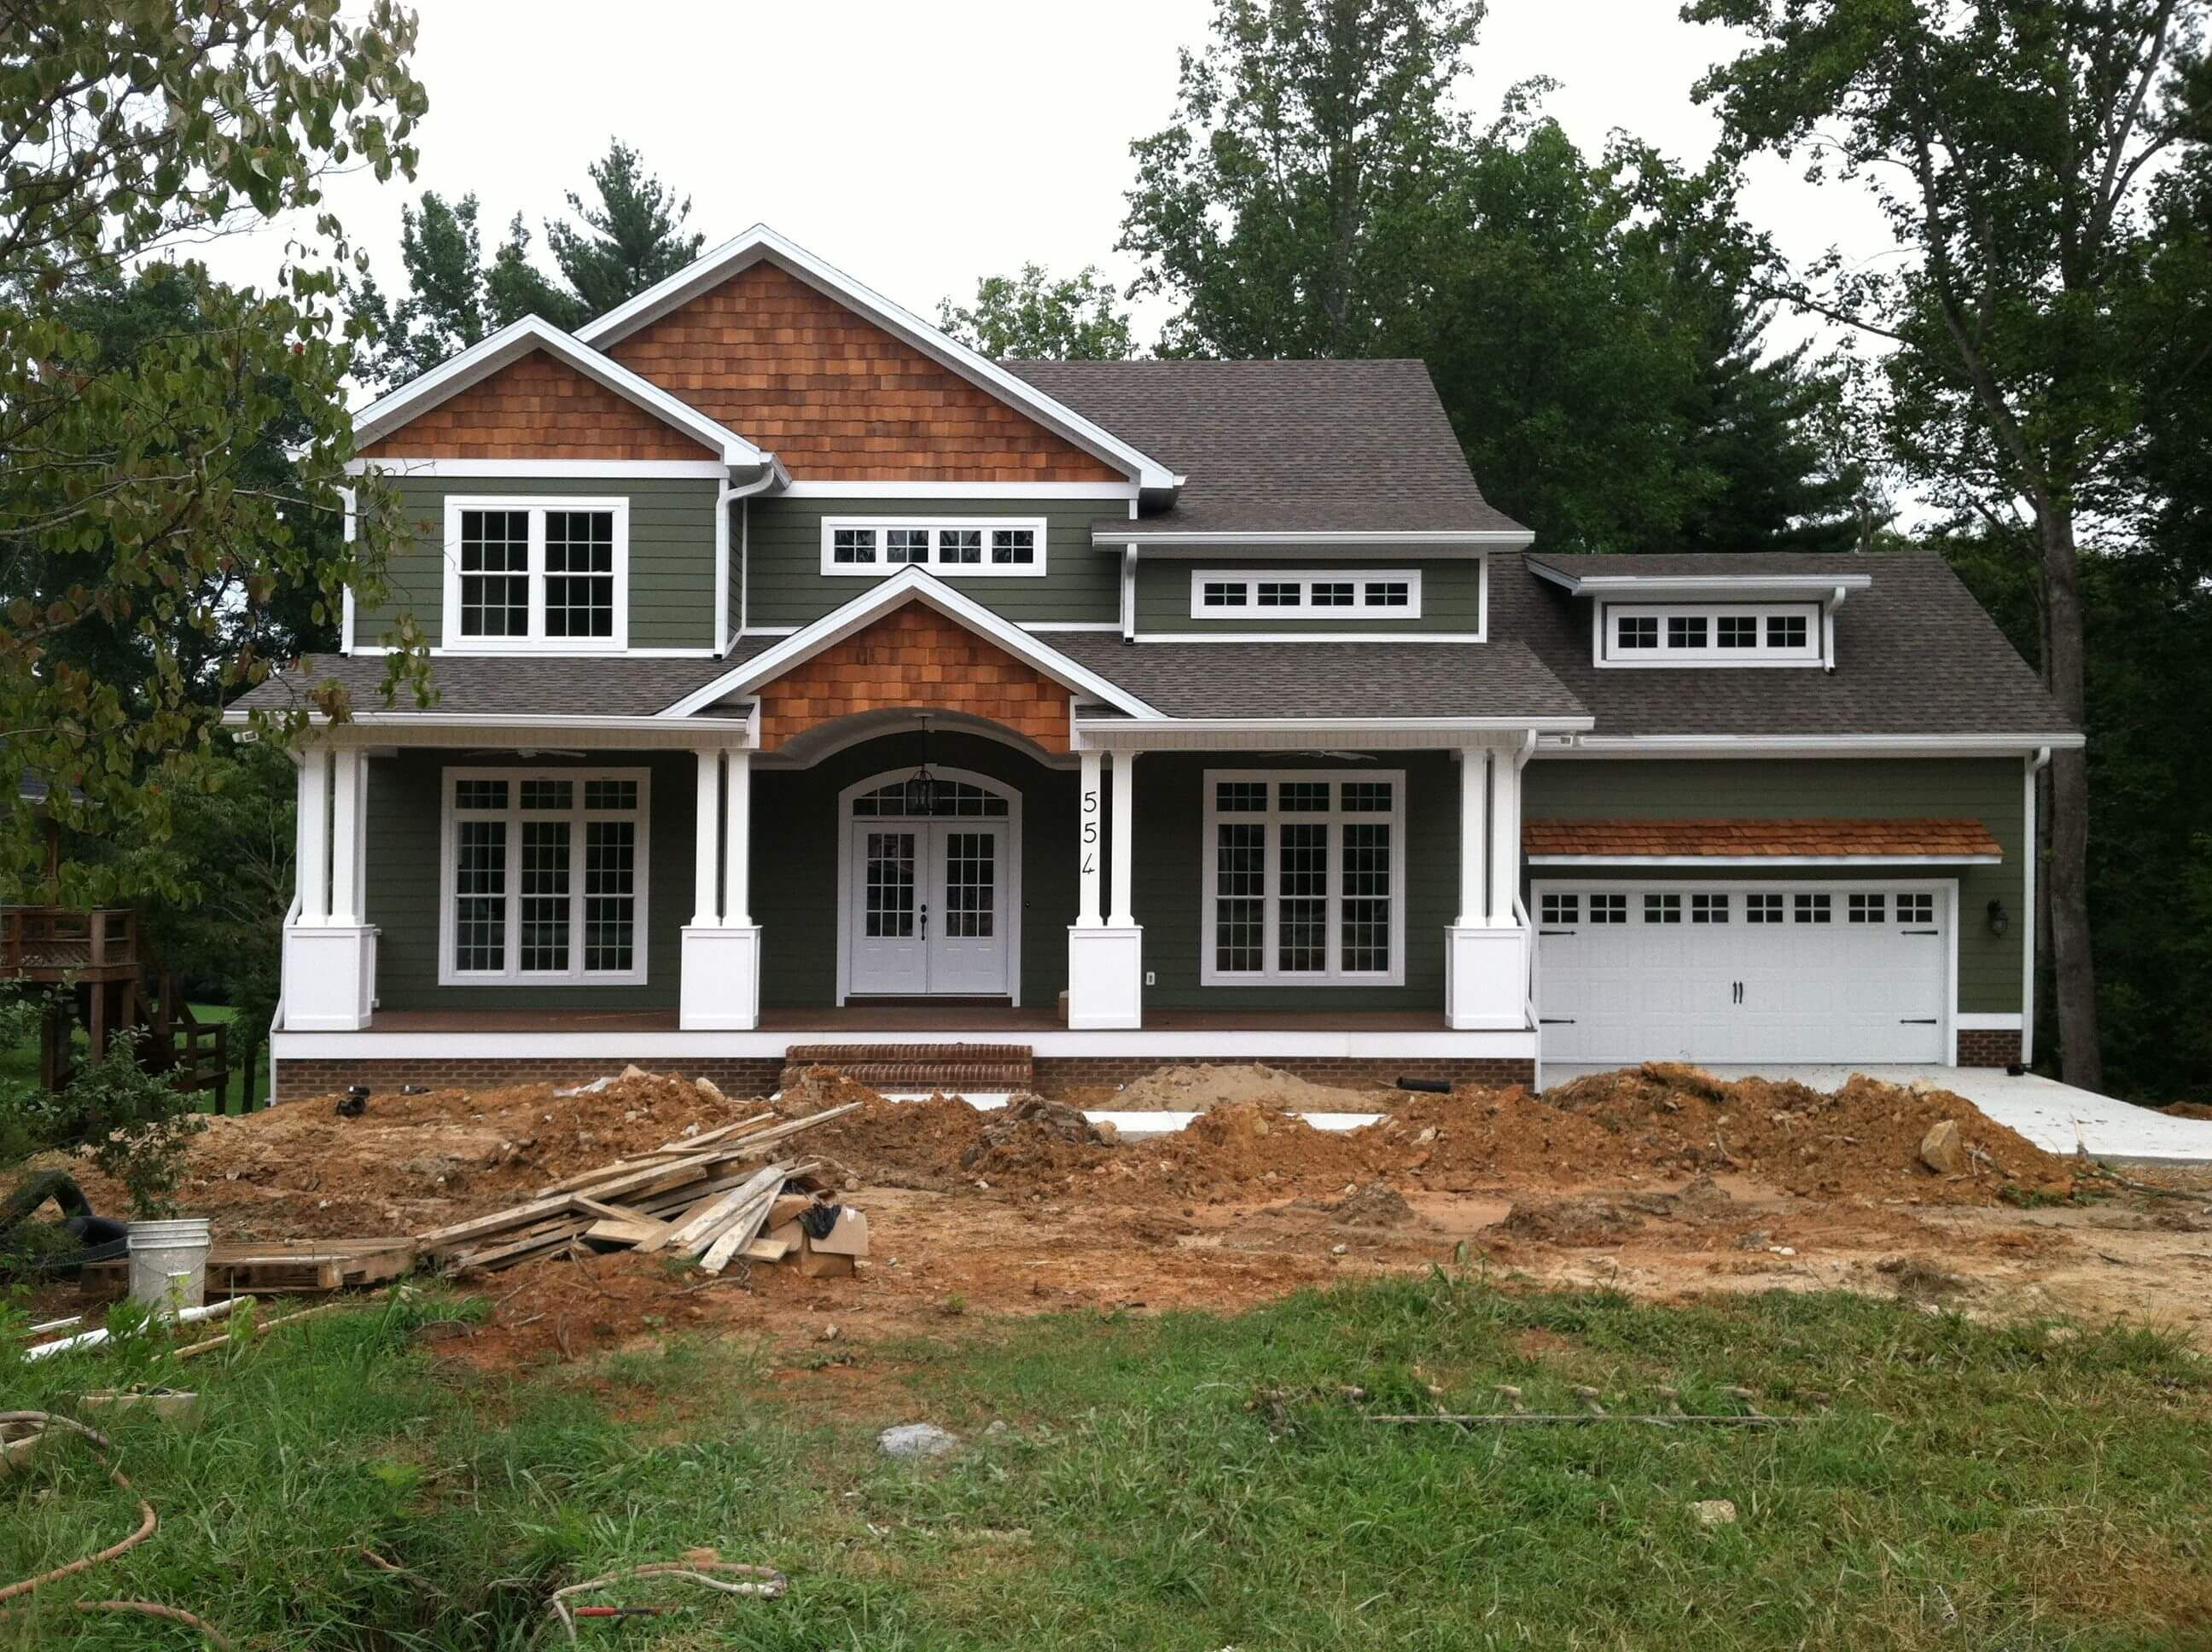 Things You Need To Know About A Craftsman Style House Craftsman Home Exterior Craftsman House Craftsman House Plans